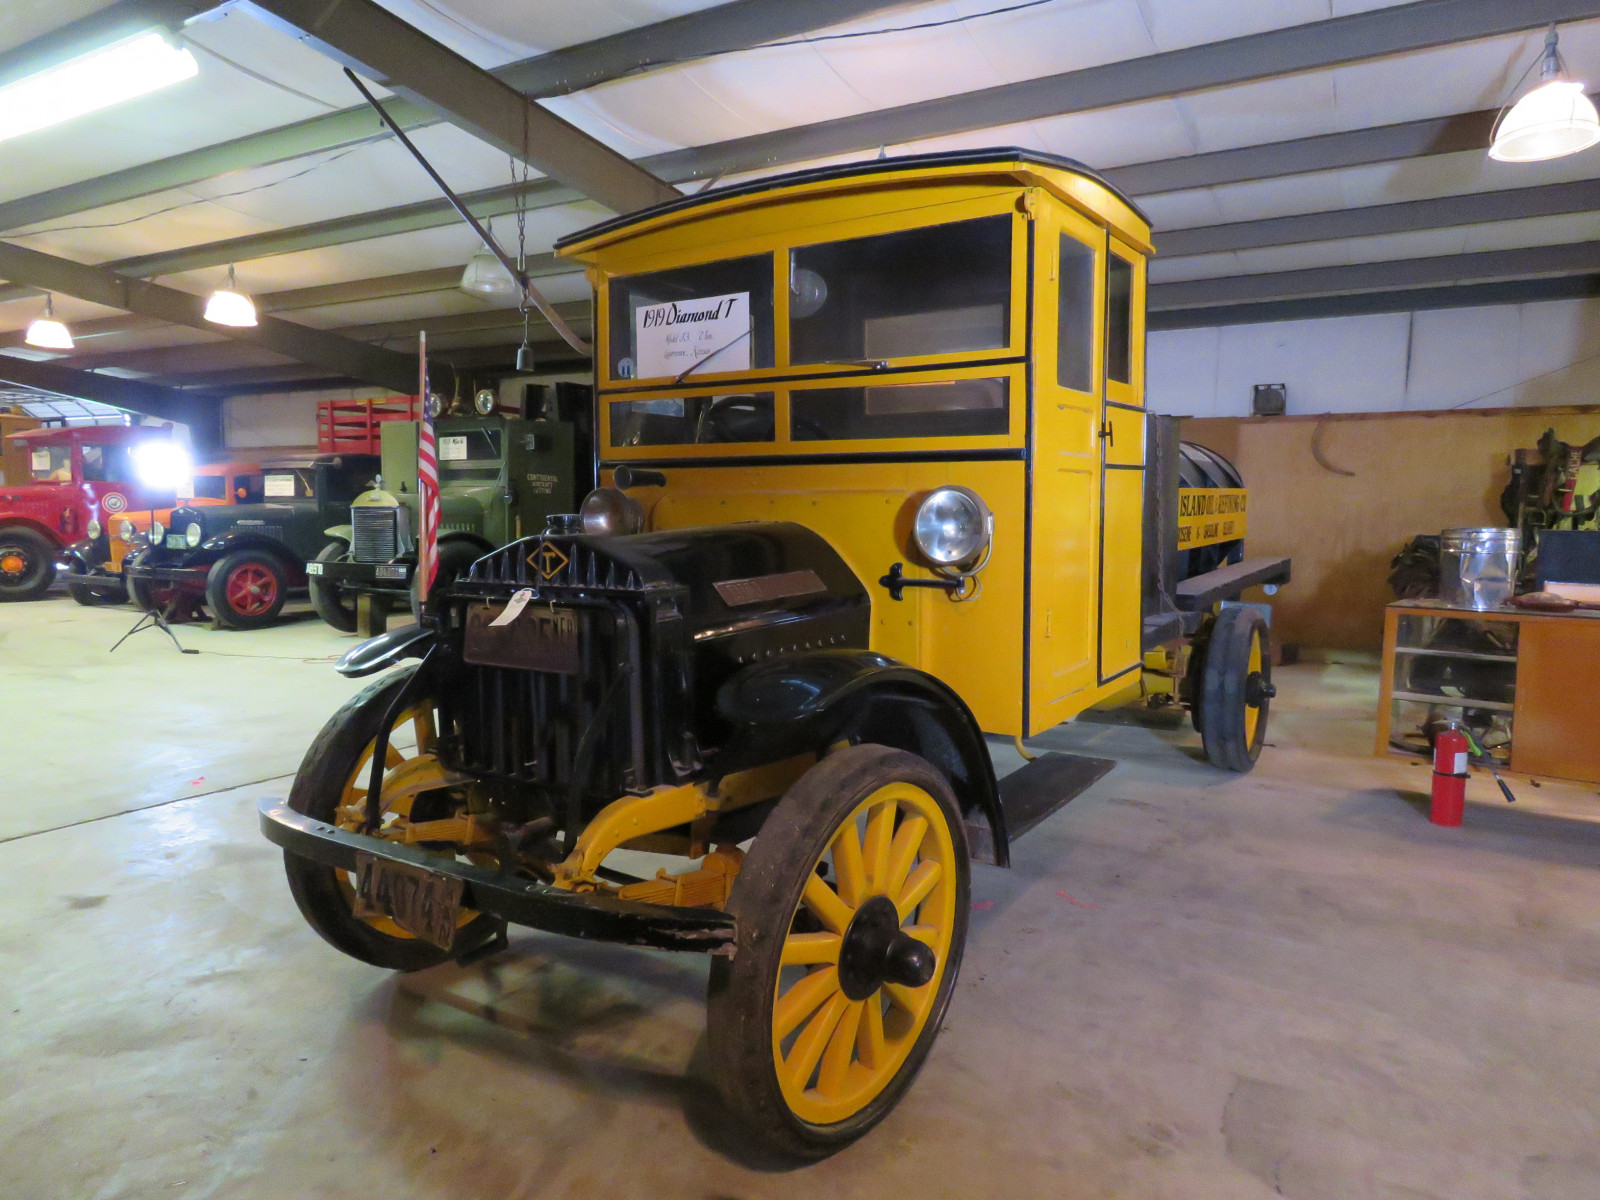 1919 Diamond T Model J3 2 ton Fuel Truck - Image 1